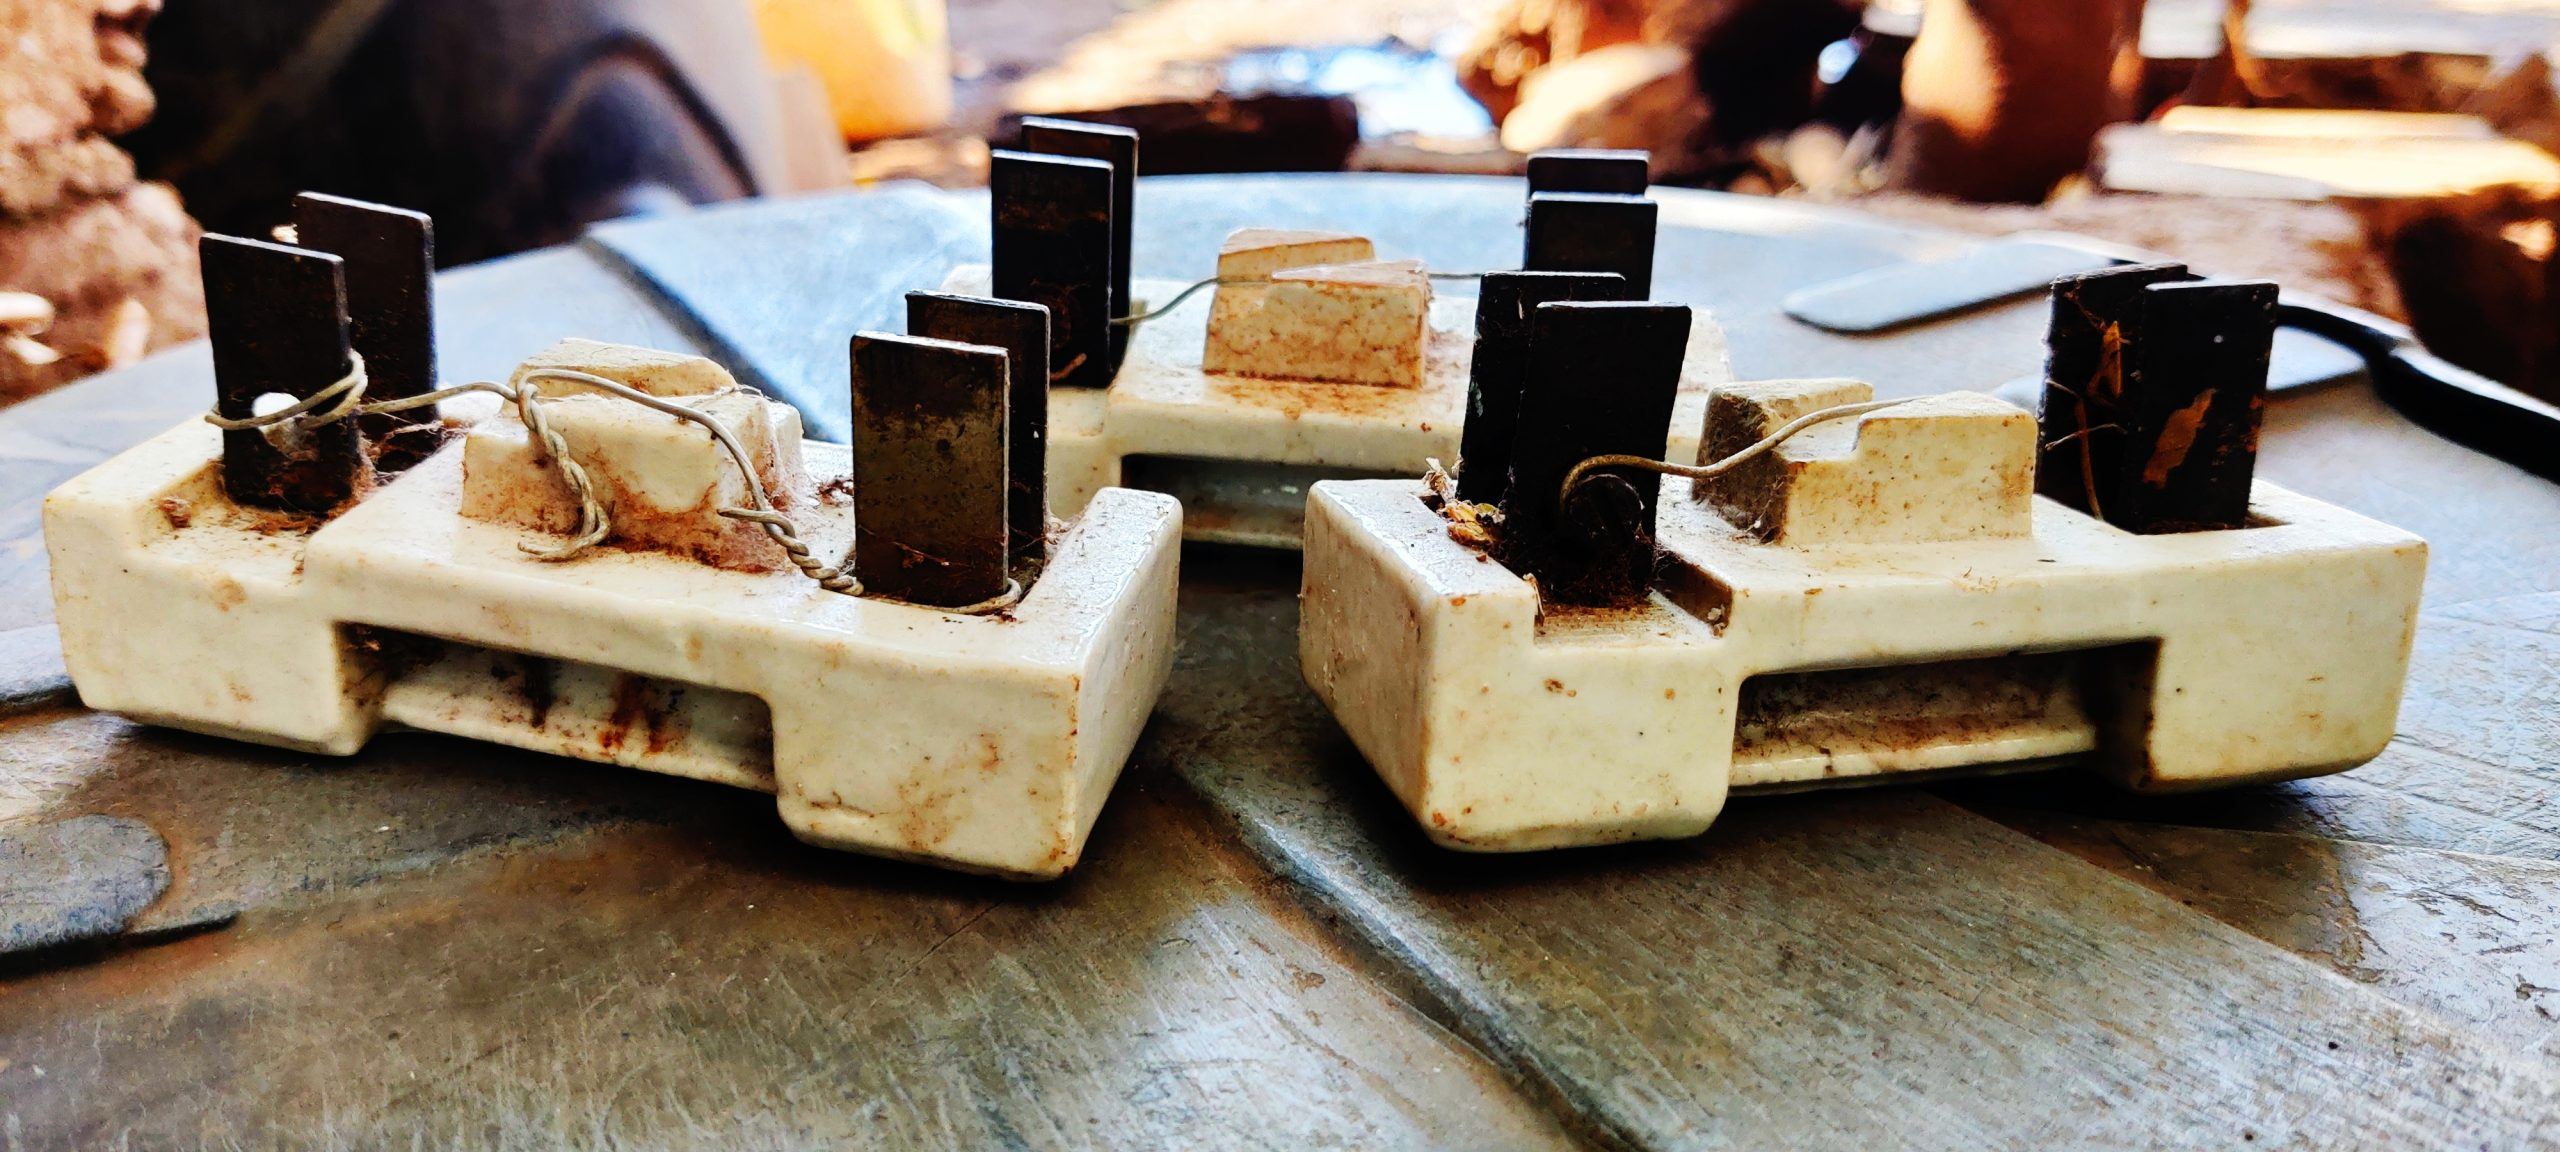 Old electrical fuses